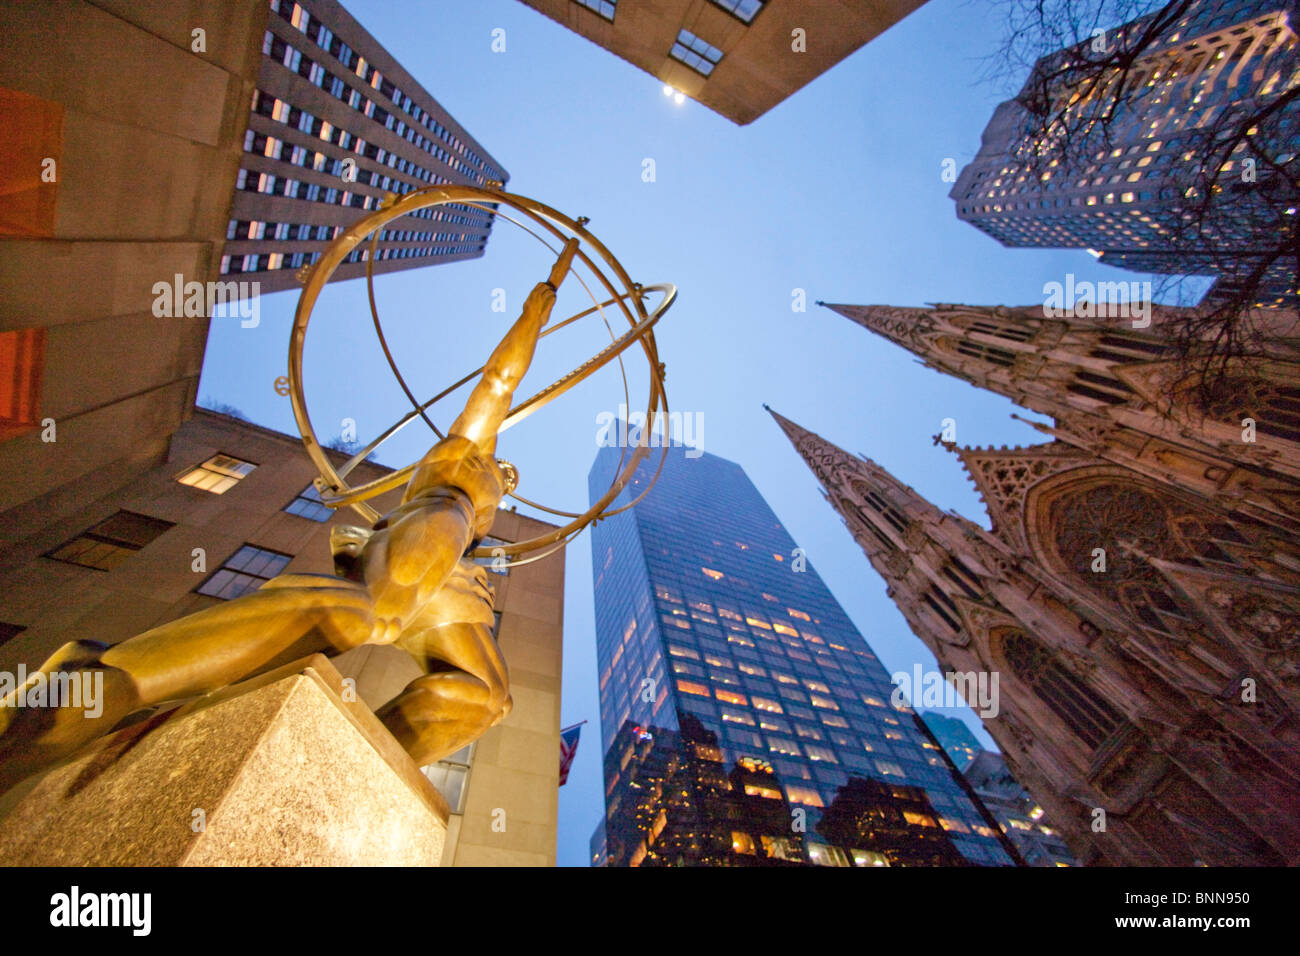 USA United States of America New York city 5th avenue Saint Patrick Cathedral blocks of flats high-rise buildings - Stock Image